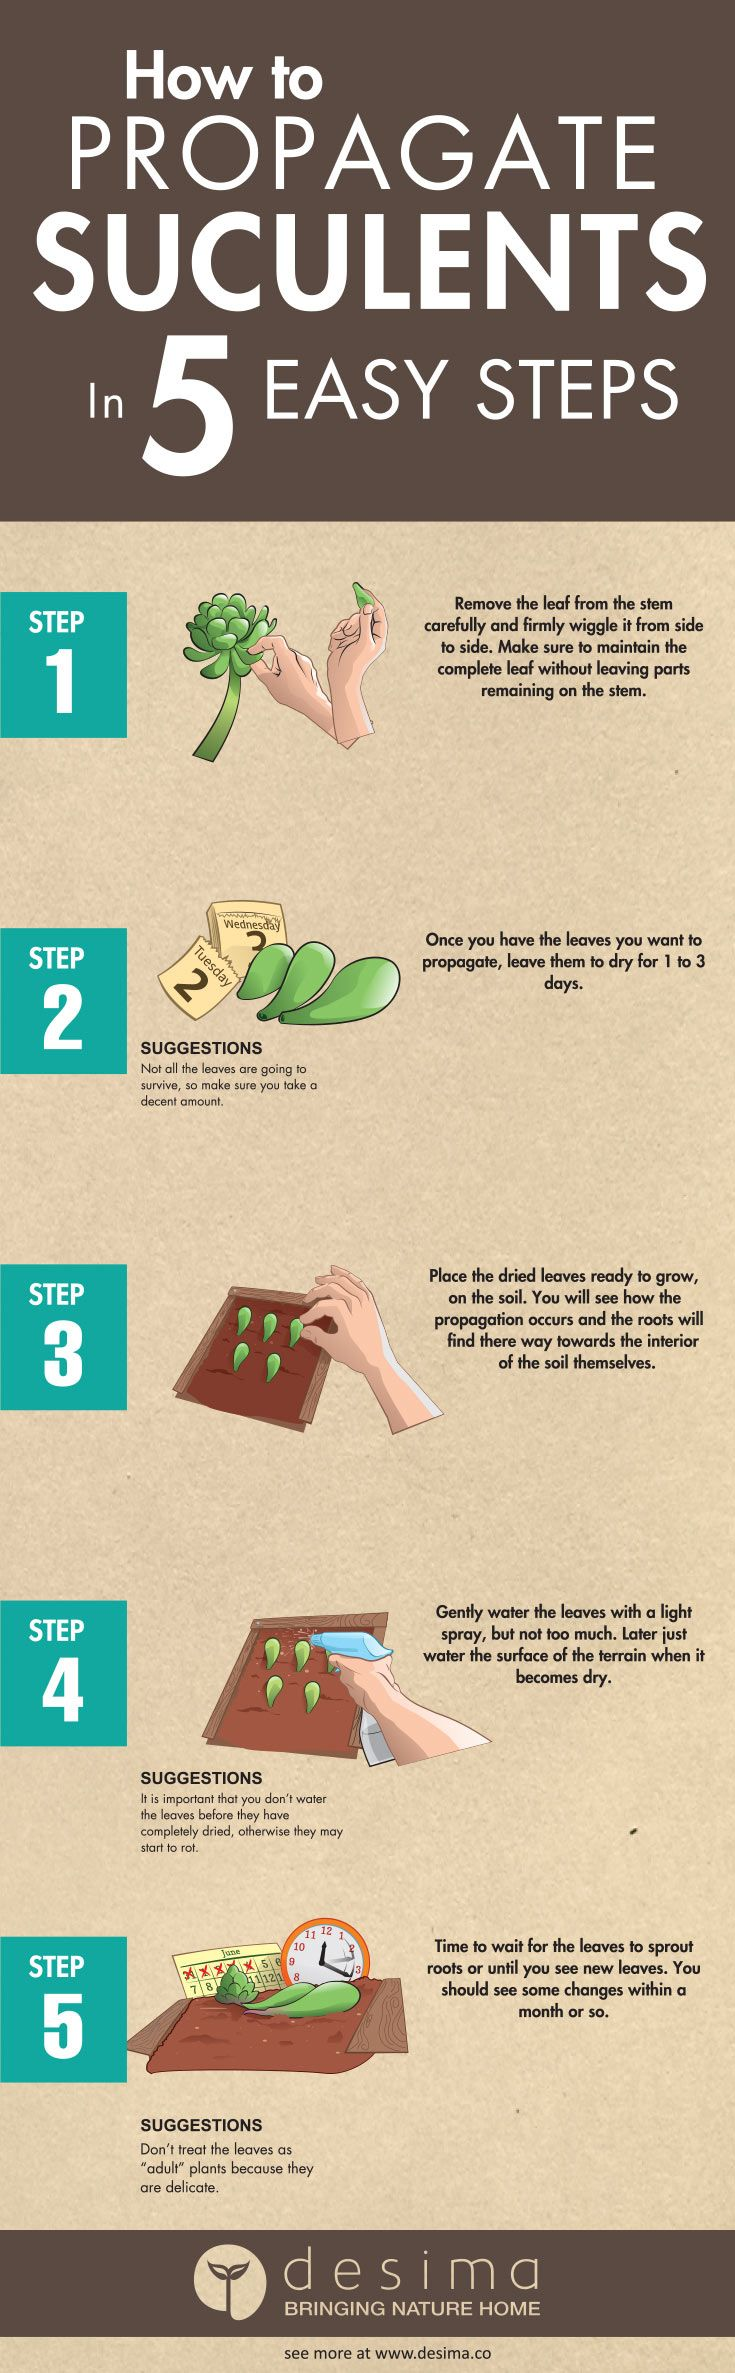 How to Propagate Succulents in 5 Easy Steps Remember if you use this infographic on your website, you must have a link back to this page and our home page www.desima.co Check out our recommended succulent planters. How about you, have you tried this, what was the result?  Feat